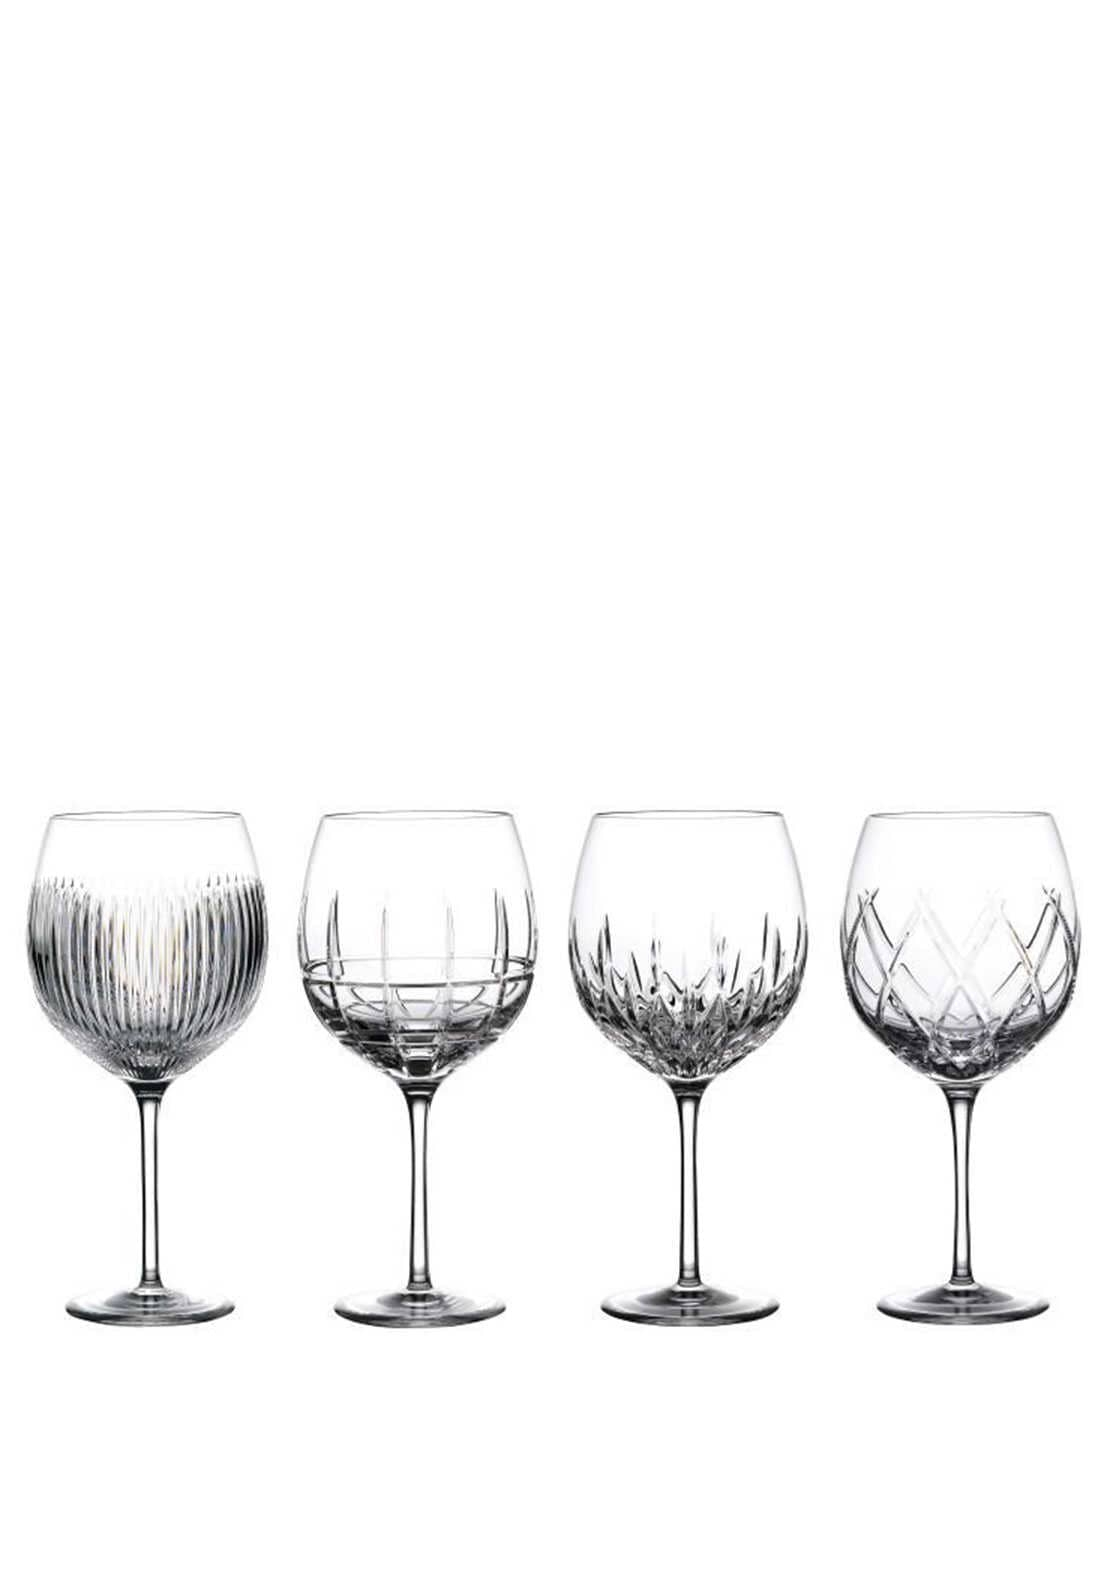 Waterford Crystal Gin Journeys Balloon Set of 4 Mixed Glasses